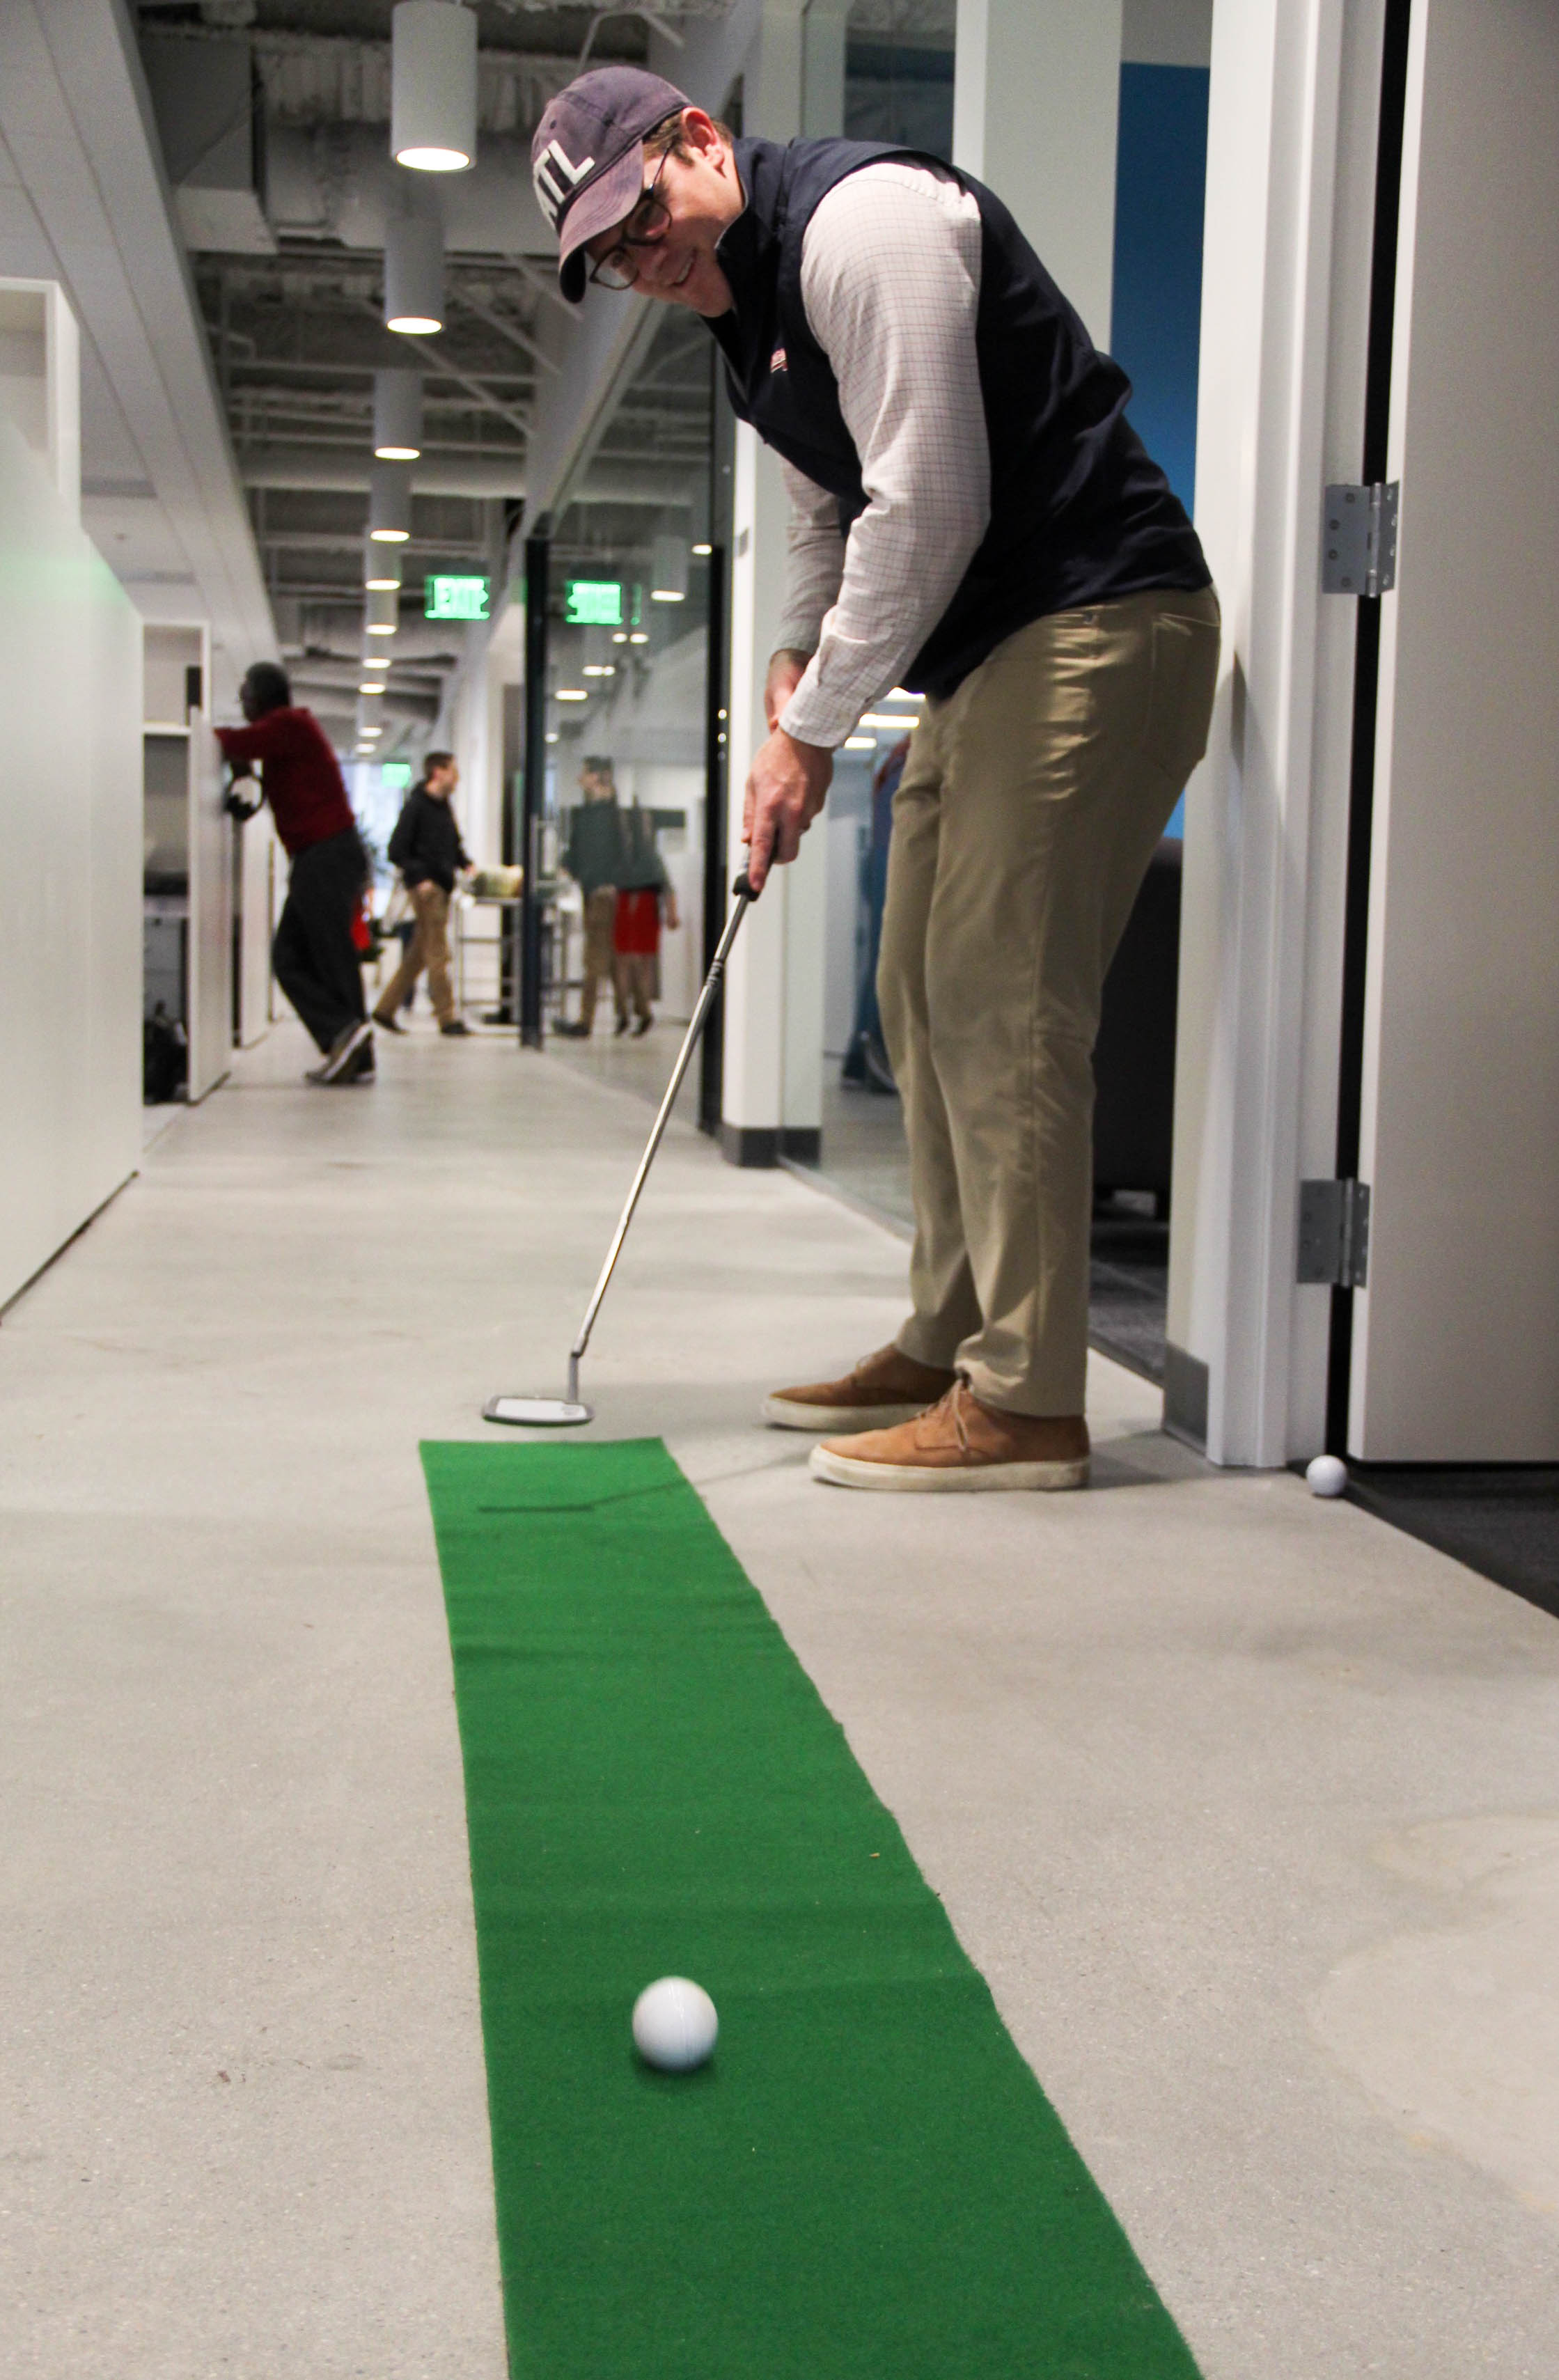 A putting green at Groundfloor's offices is a popular way for employees to spend their break time.